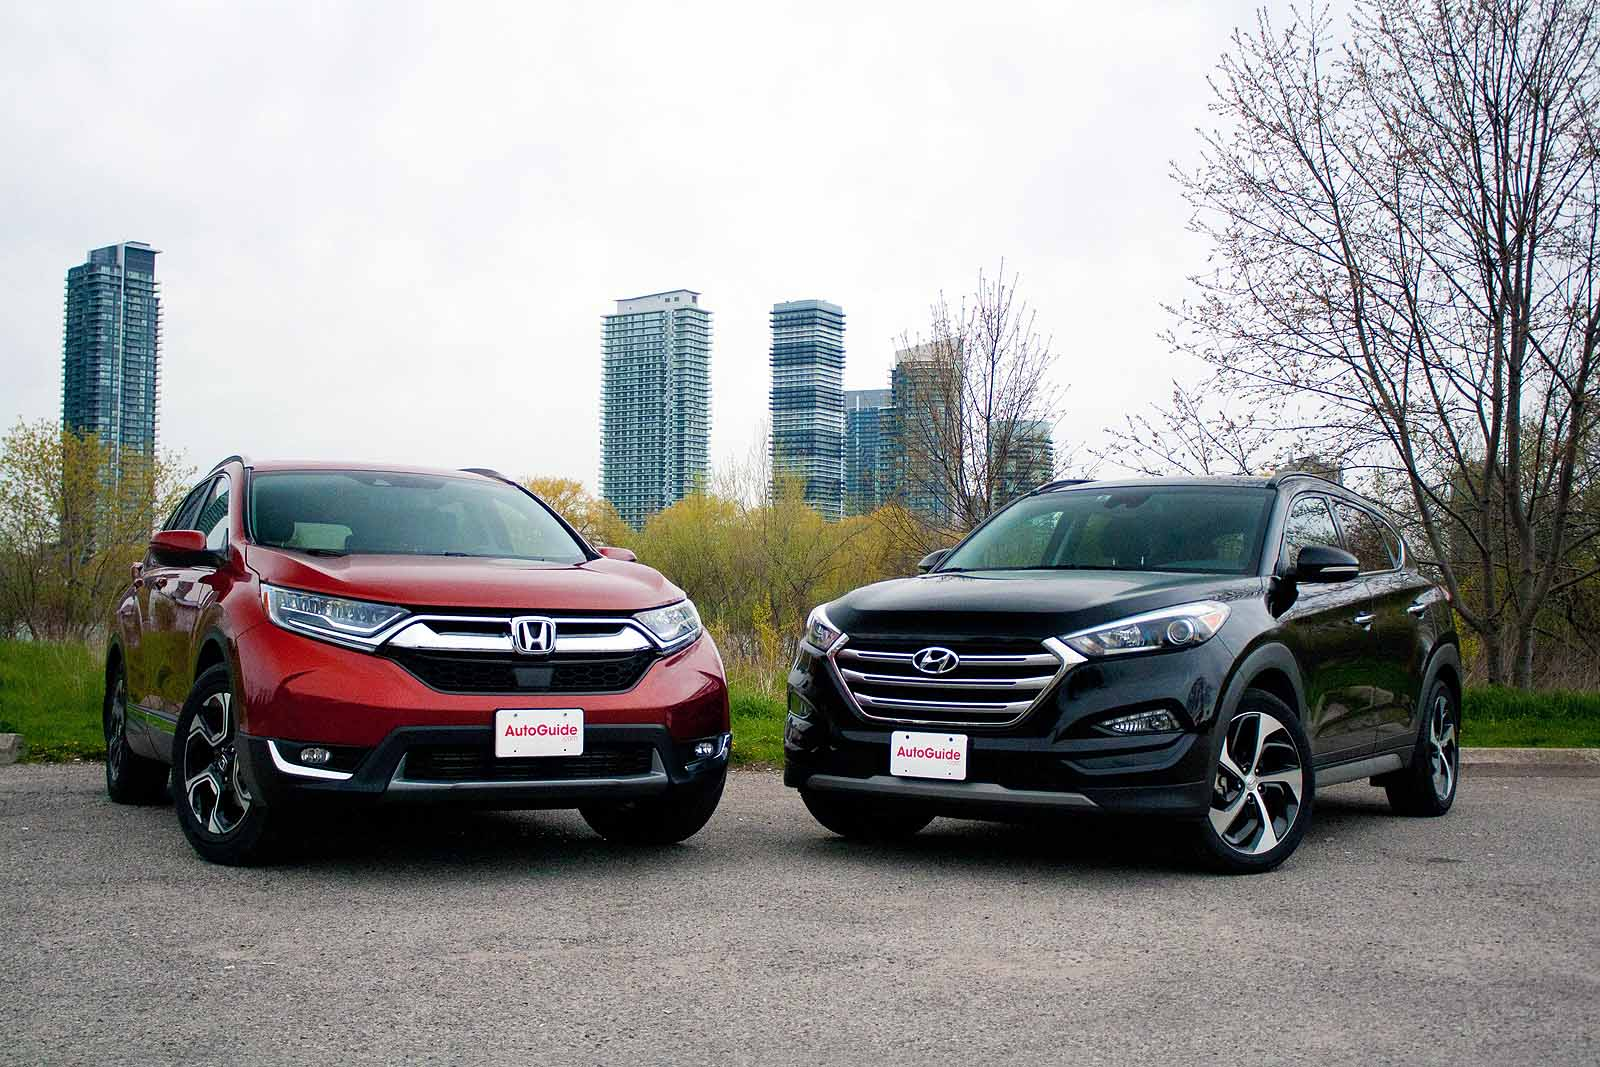 2017 Honda CR-V vs Hyundai Tucson Comparison - Hyundai Forums : Hyundai Forum